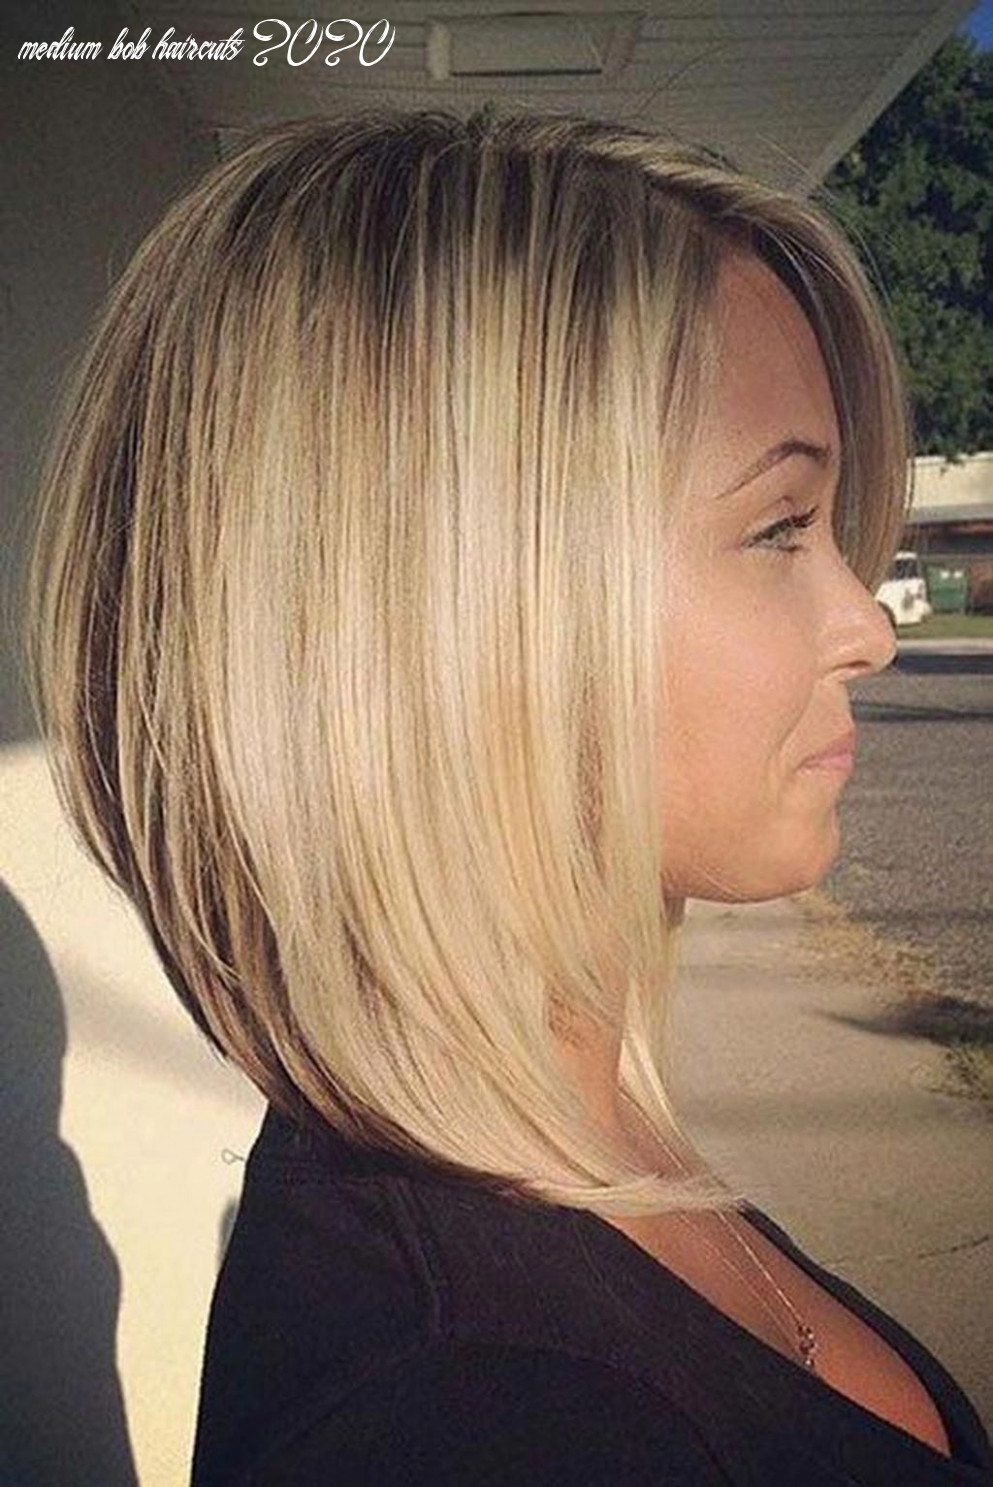 9 most popular bob hairstyles in 9 in 9 (with images